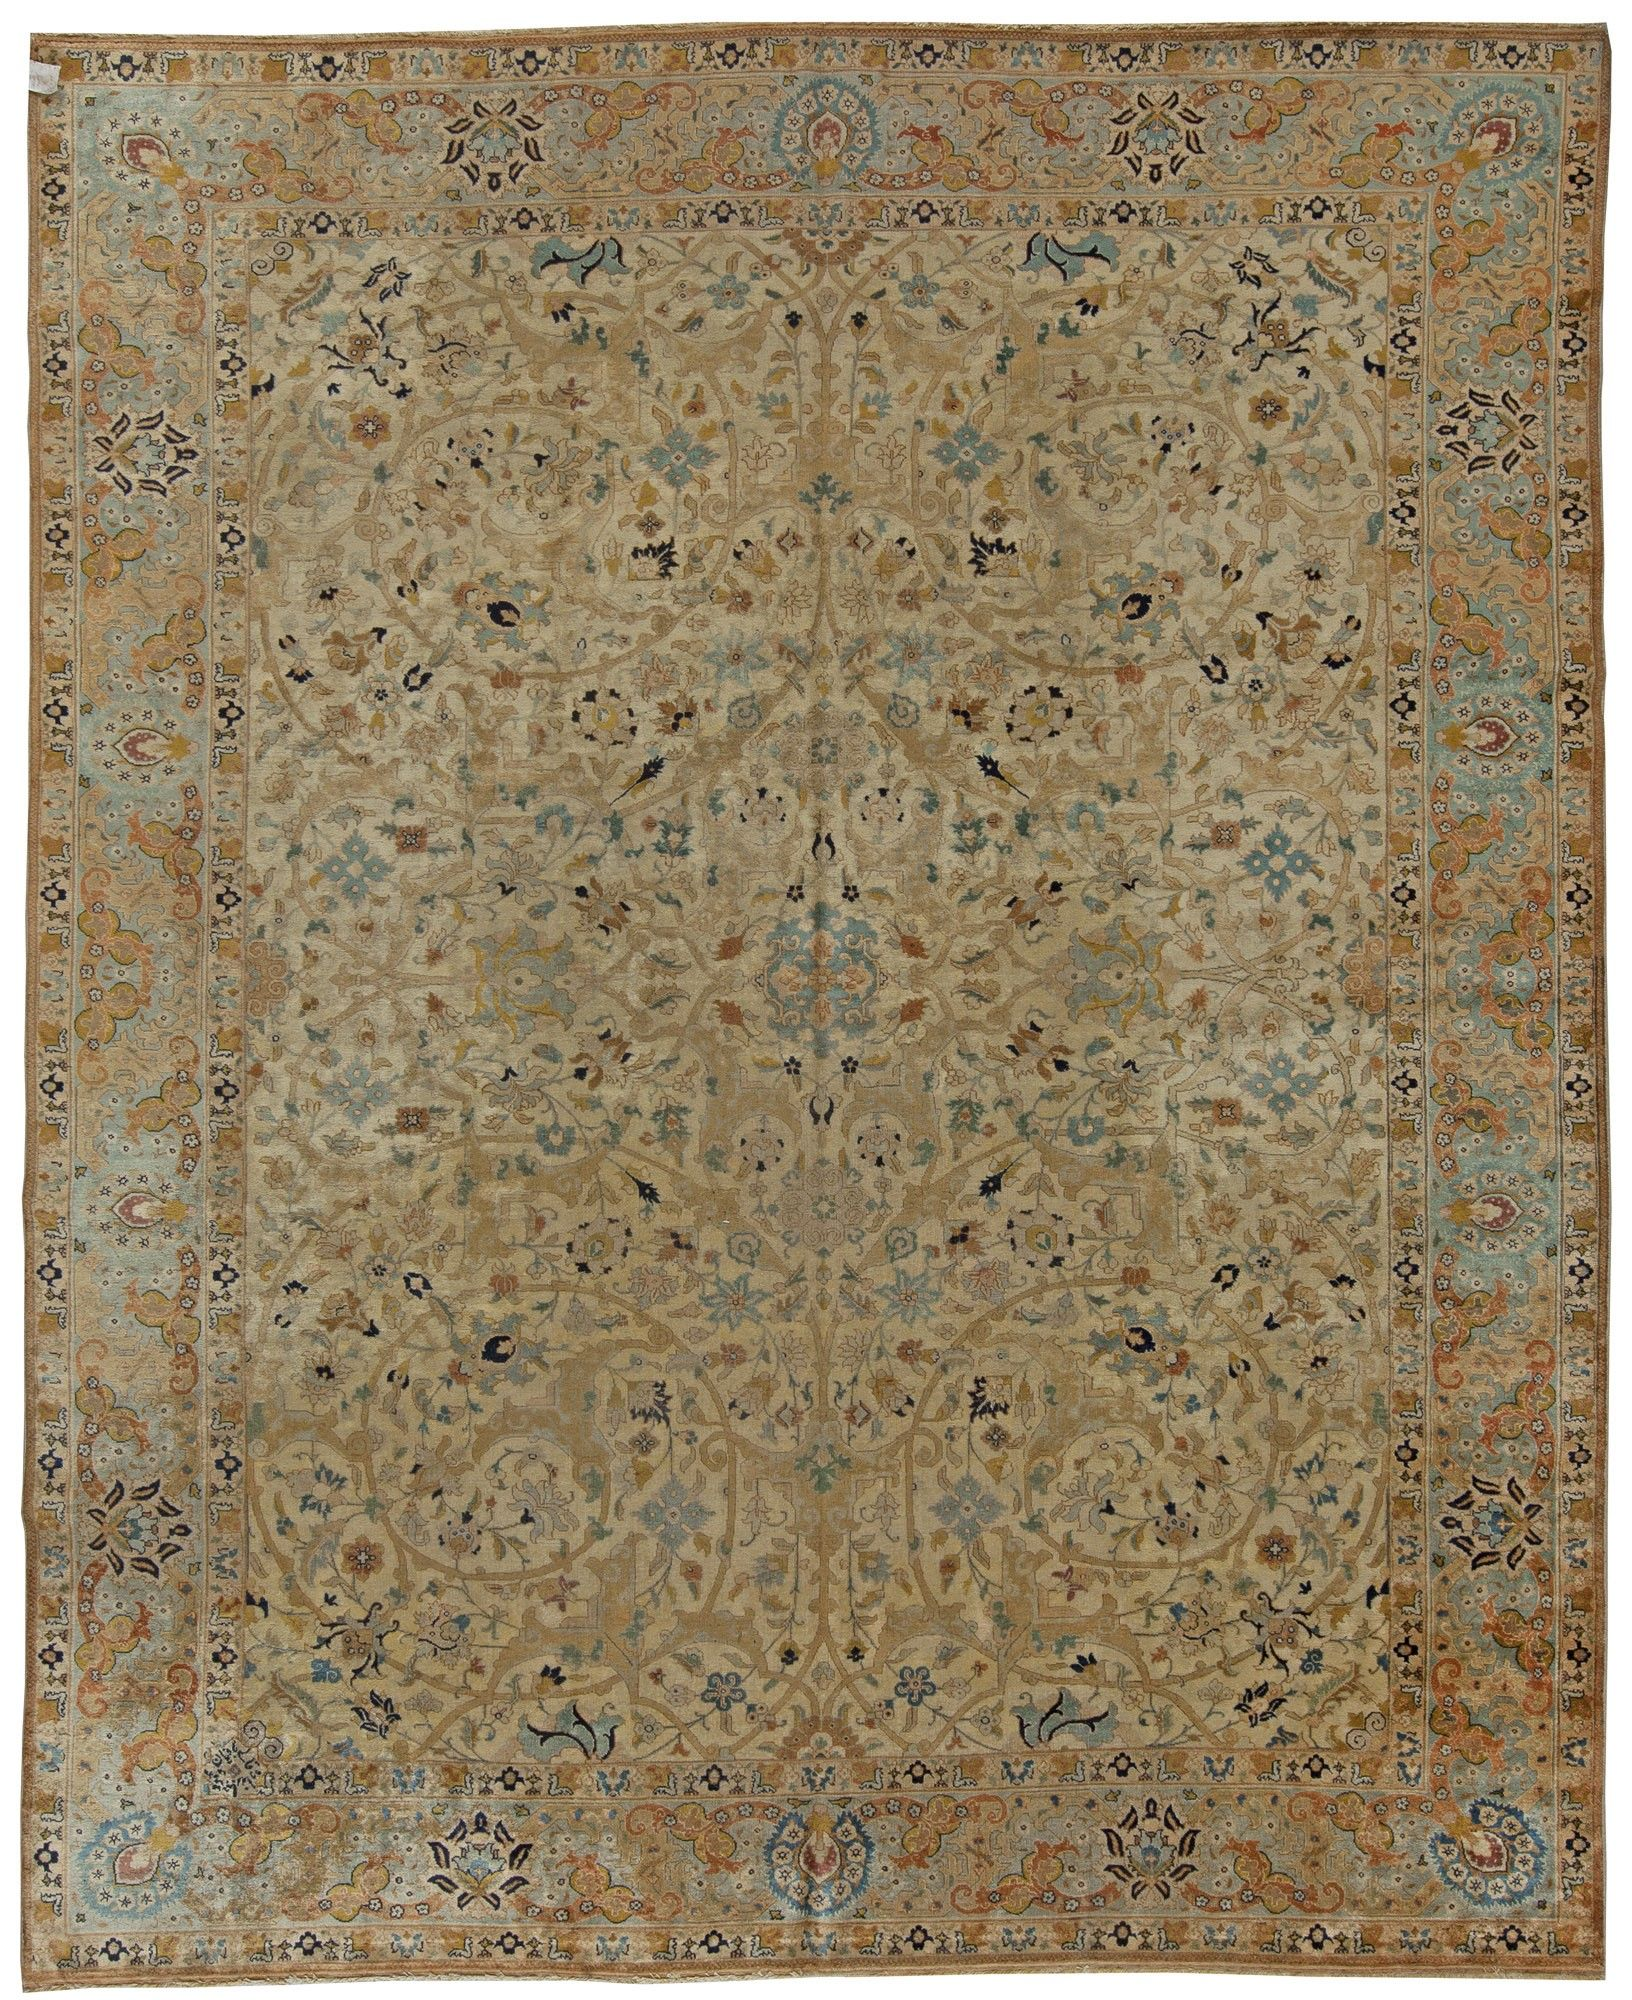 An early 20th century Persian Tabriz antique rug, the cream field with an…